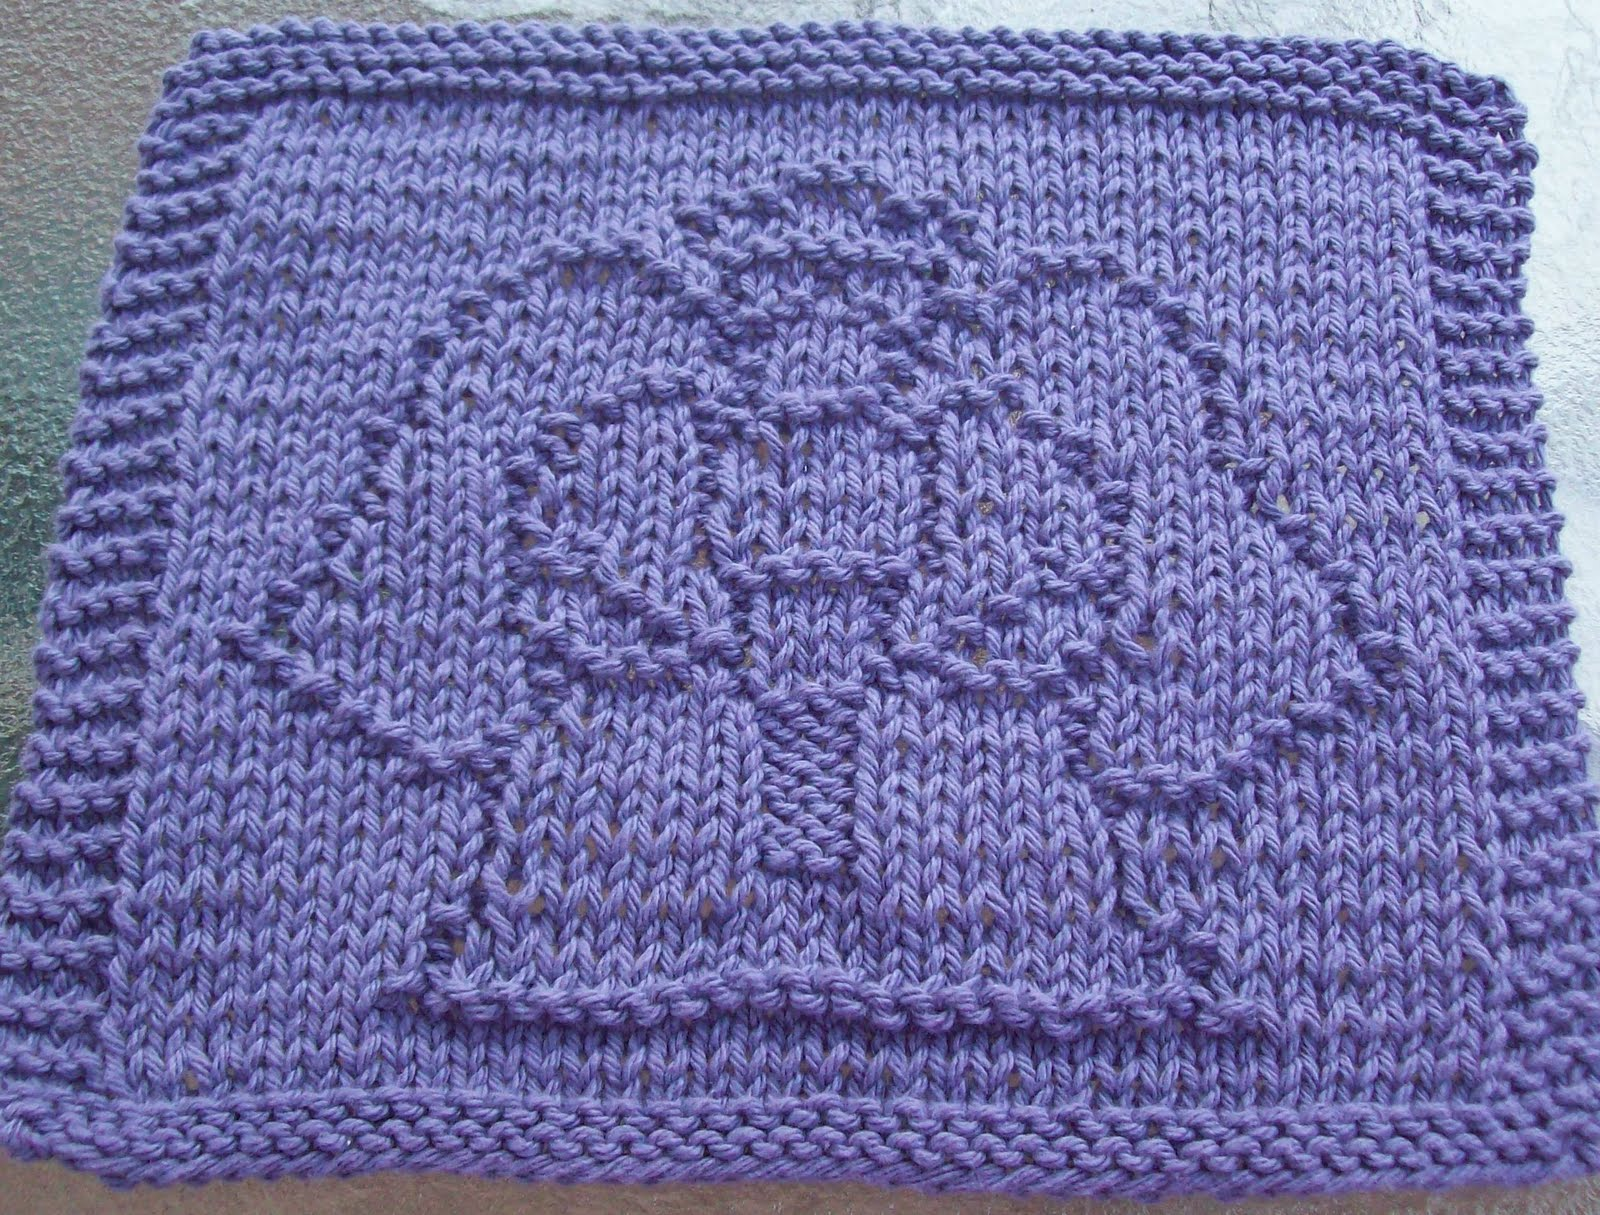 New Knitting Patterns : DigKnitty Designs: Angel Knitting Knit Dishcloth Pattern